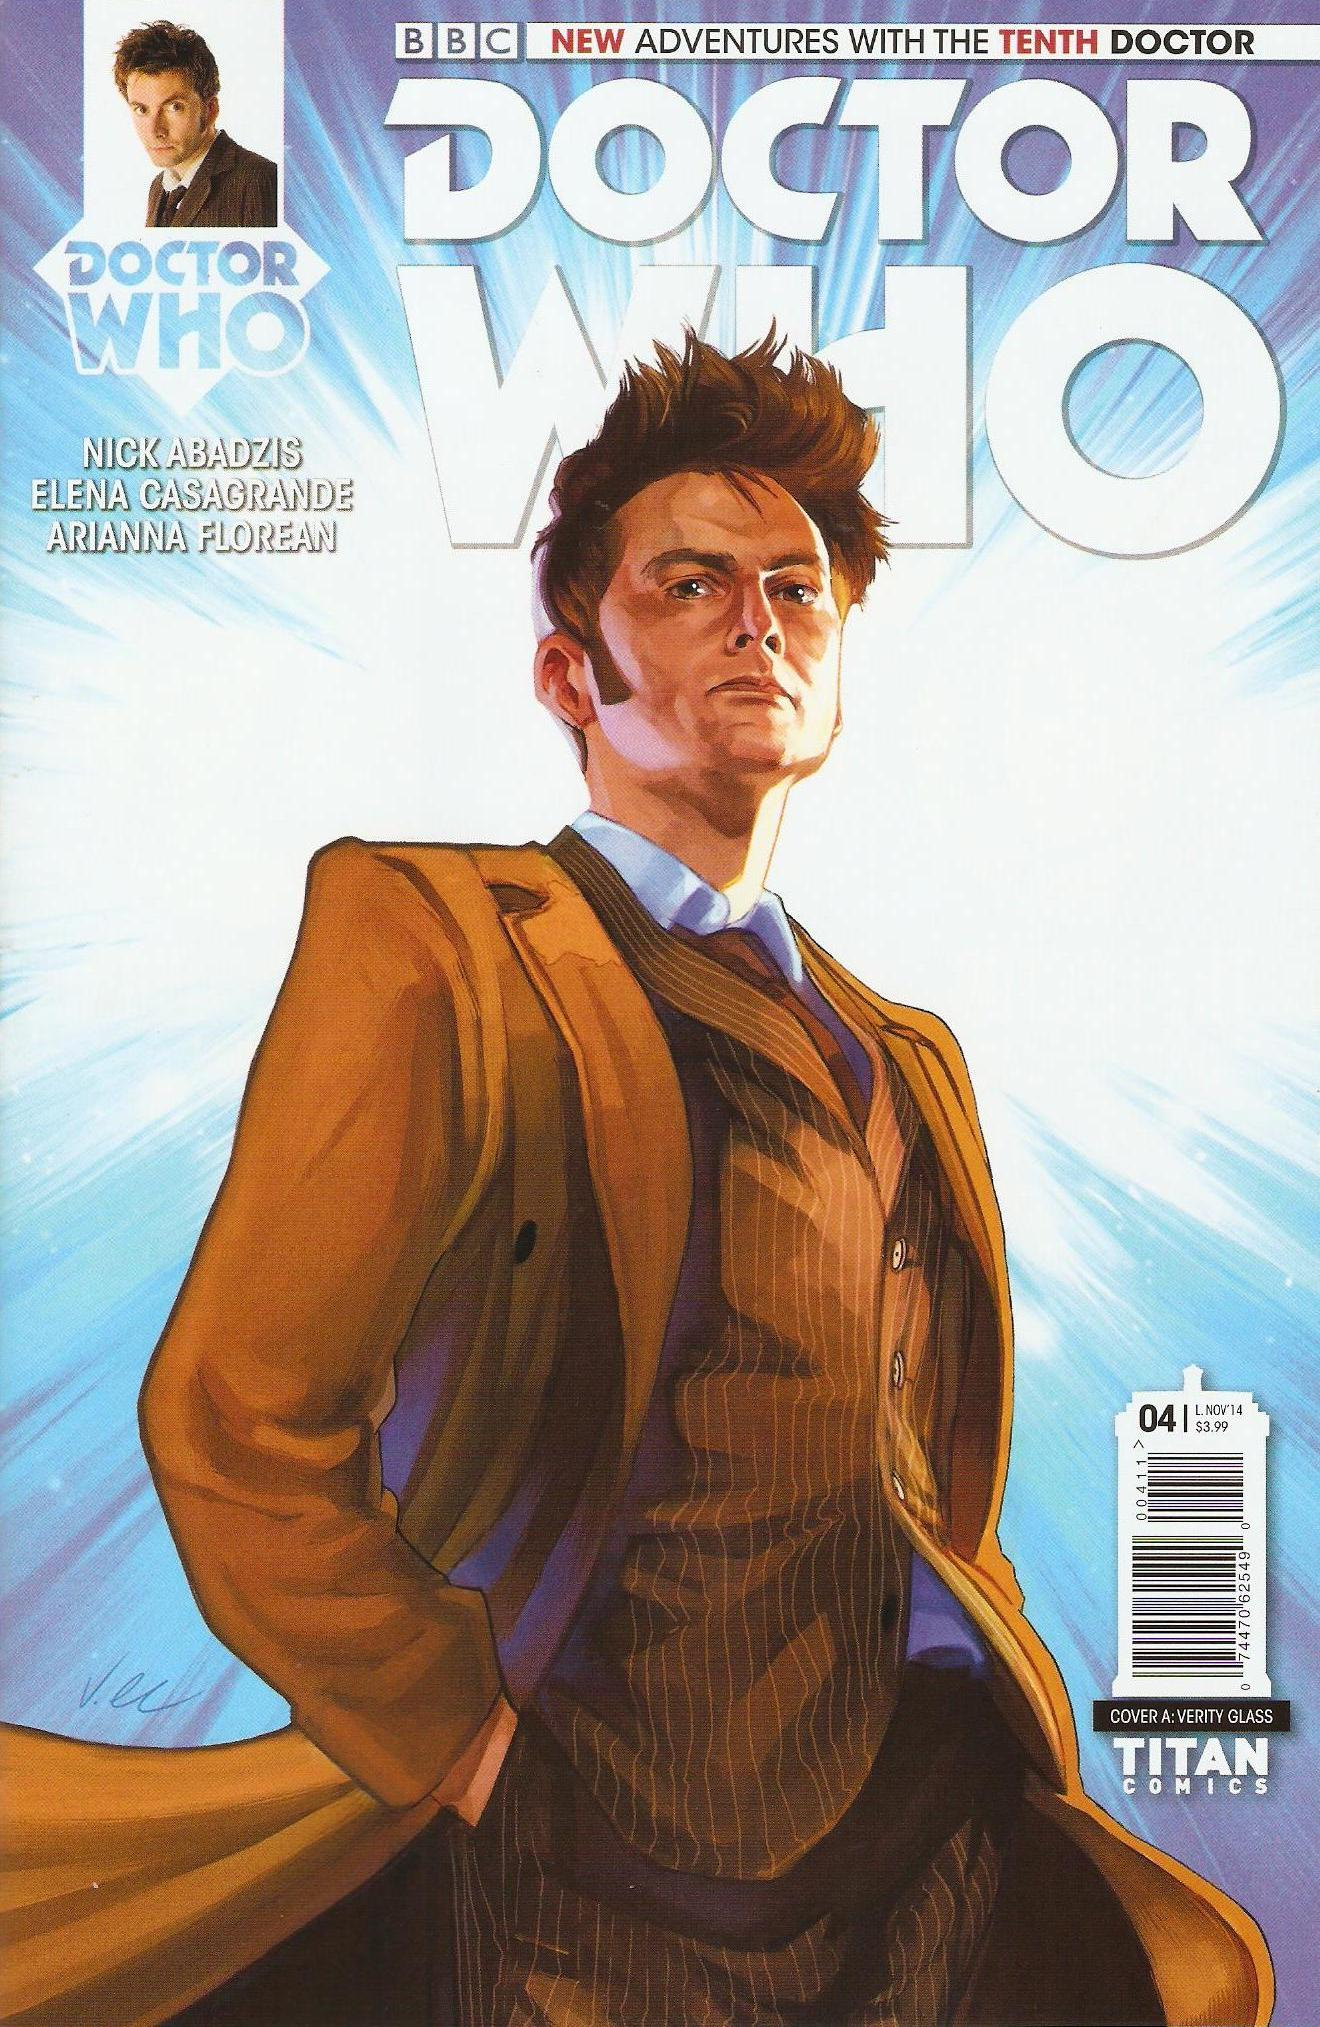 Tenth doctor issue 4a